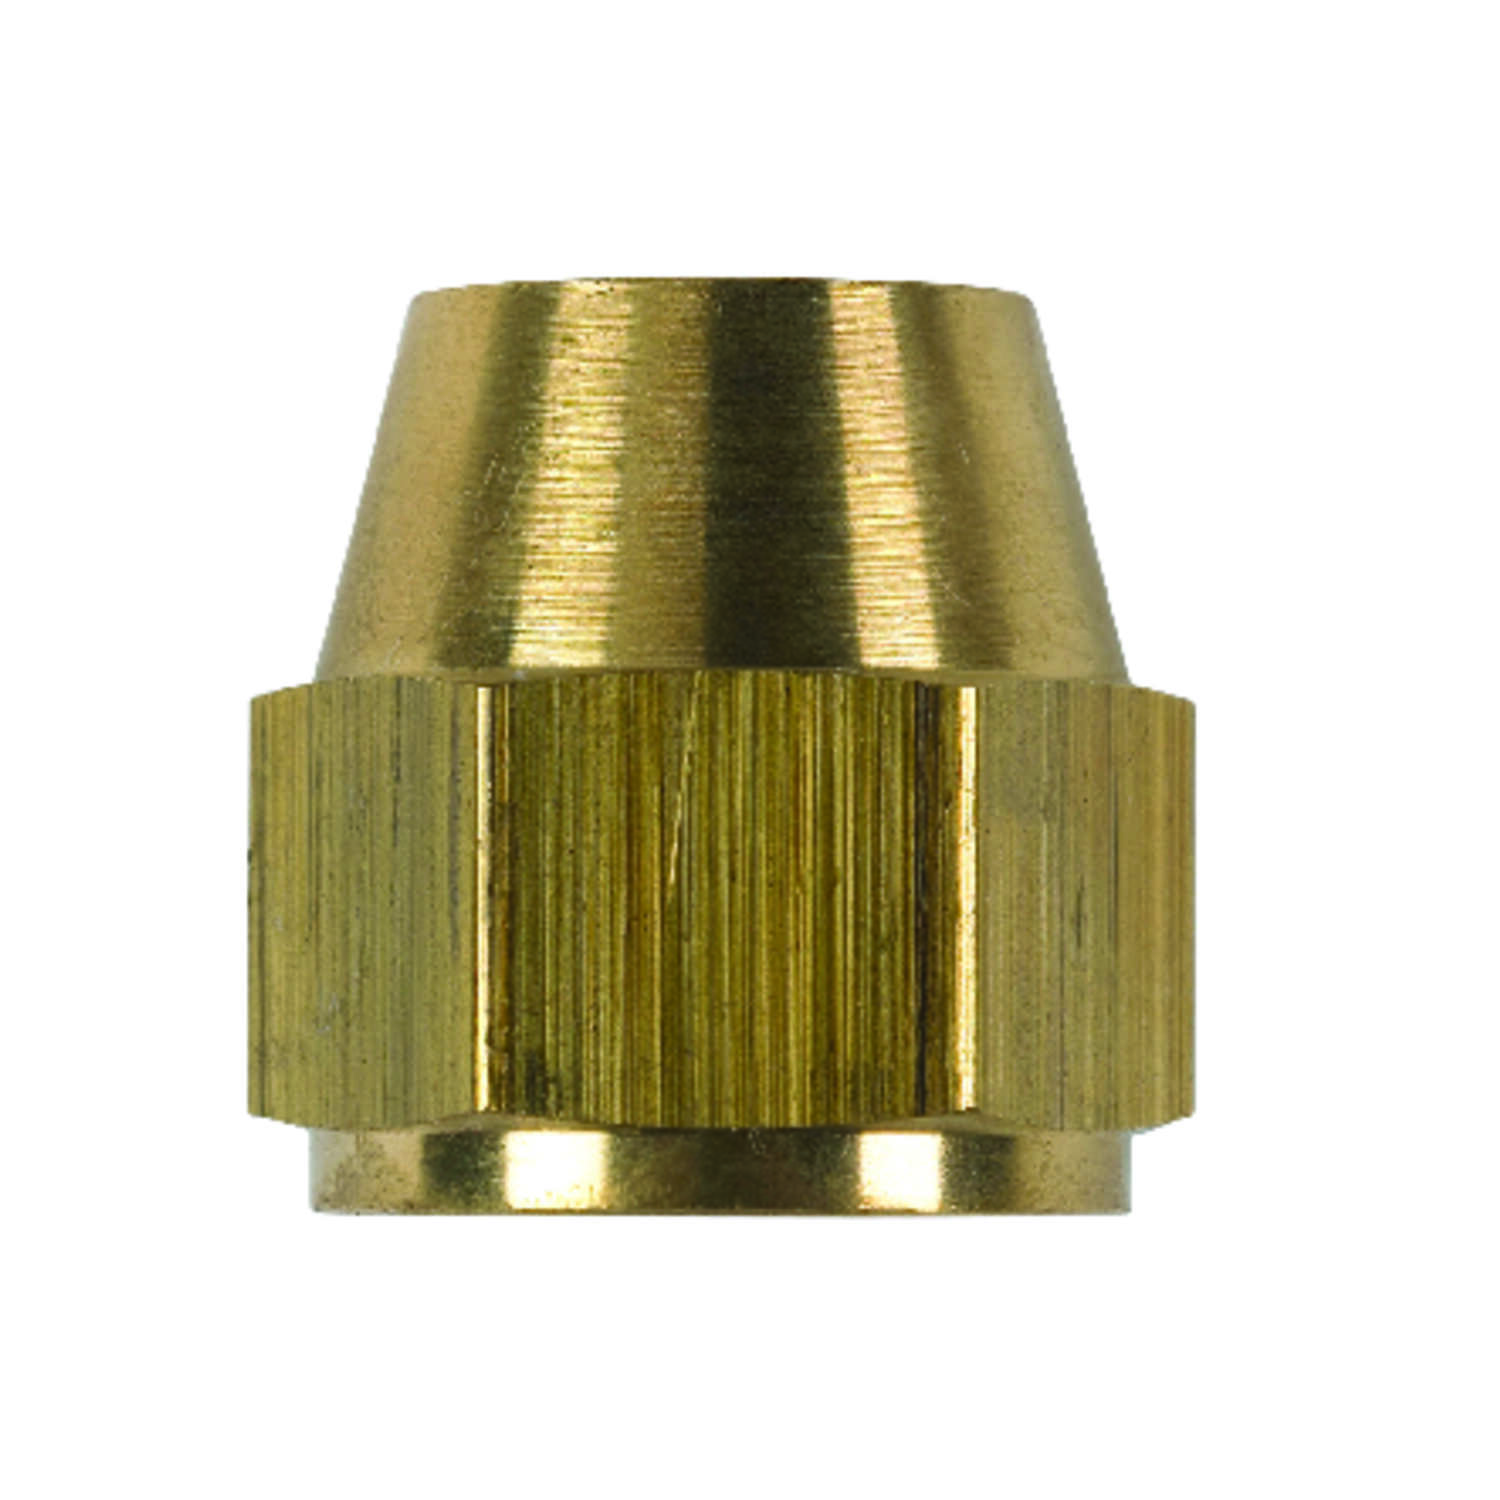 JMF  1/2 in. Flare   Brass  Nut